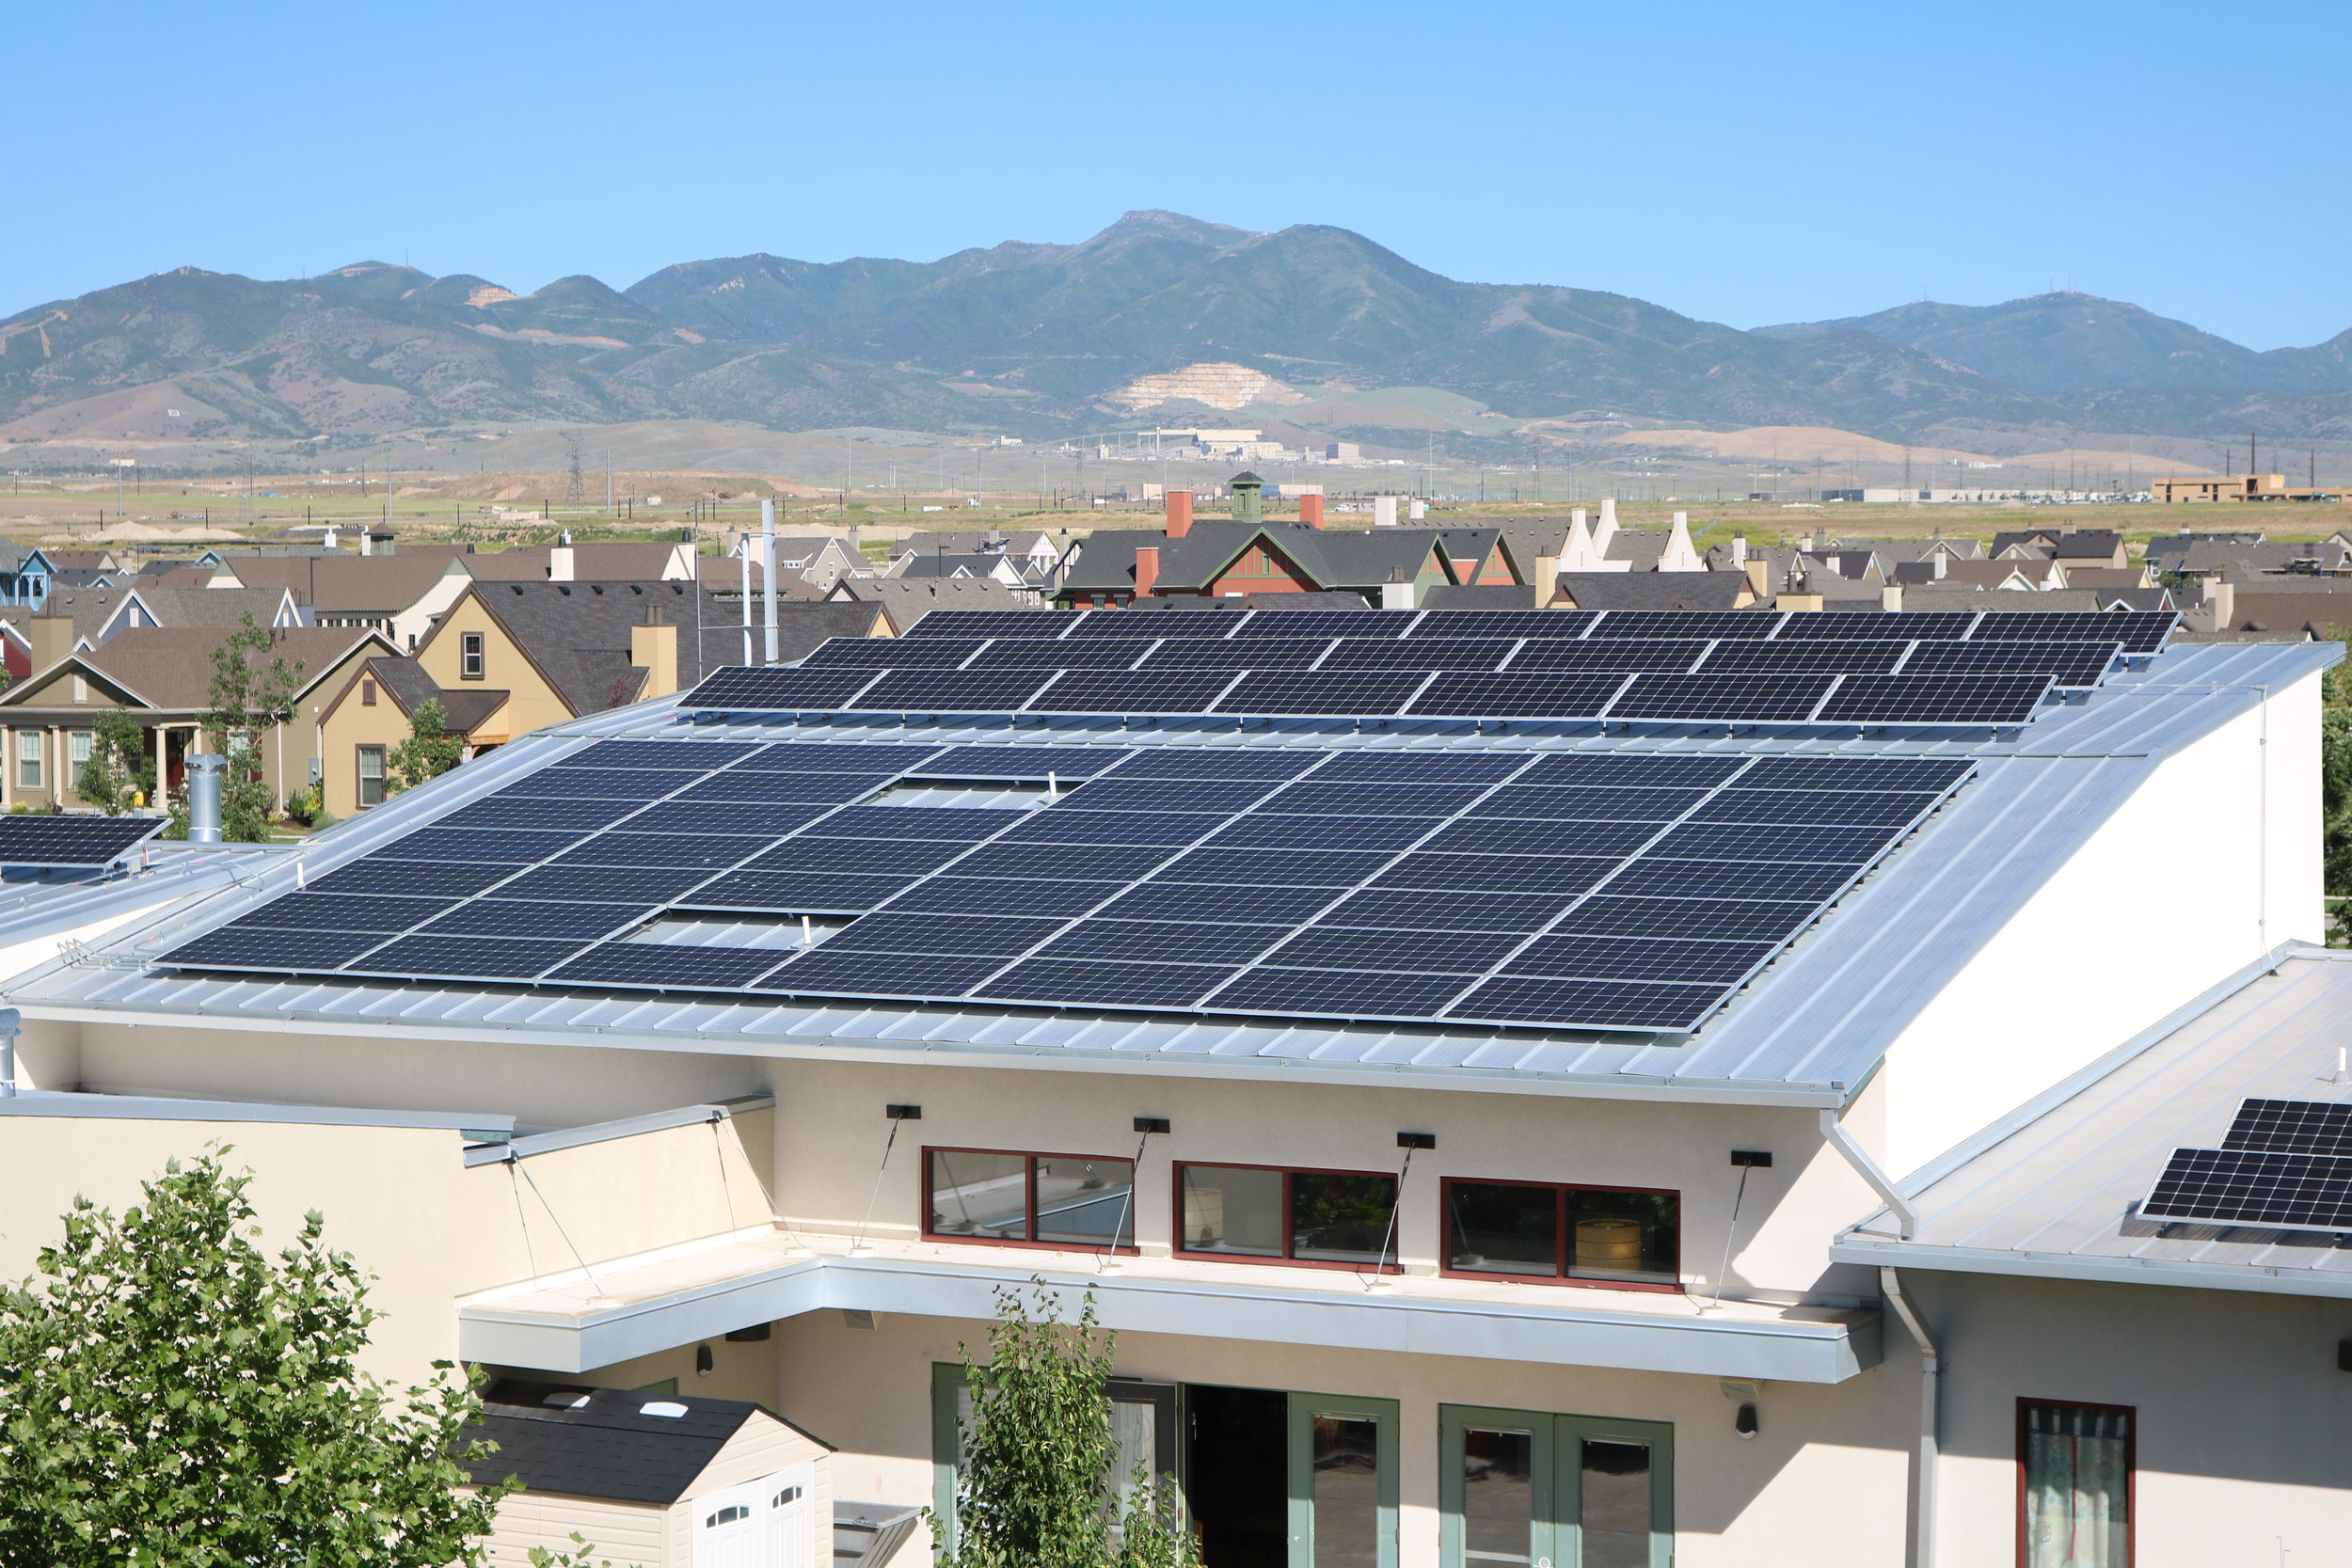 Daybreak Academy   169 panels installed 32kW generated per month  $342.97 saved per month